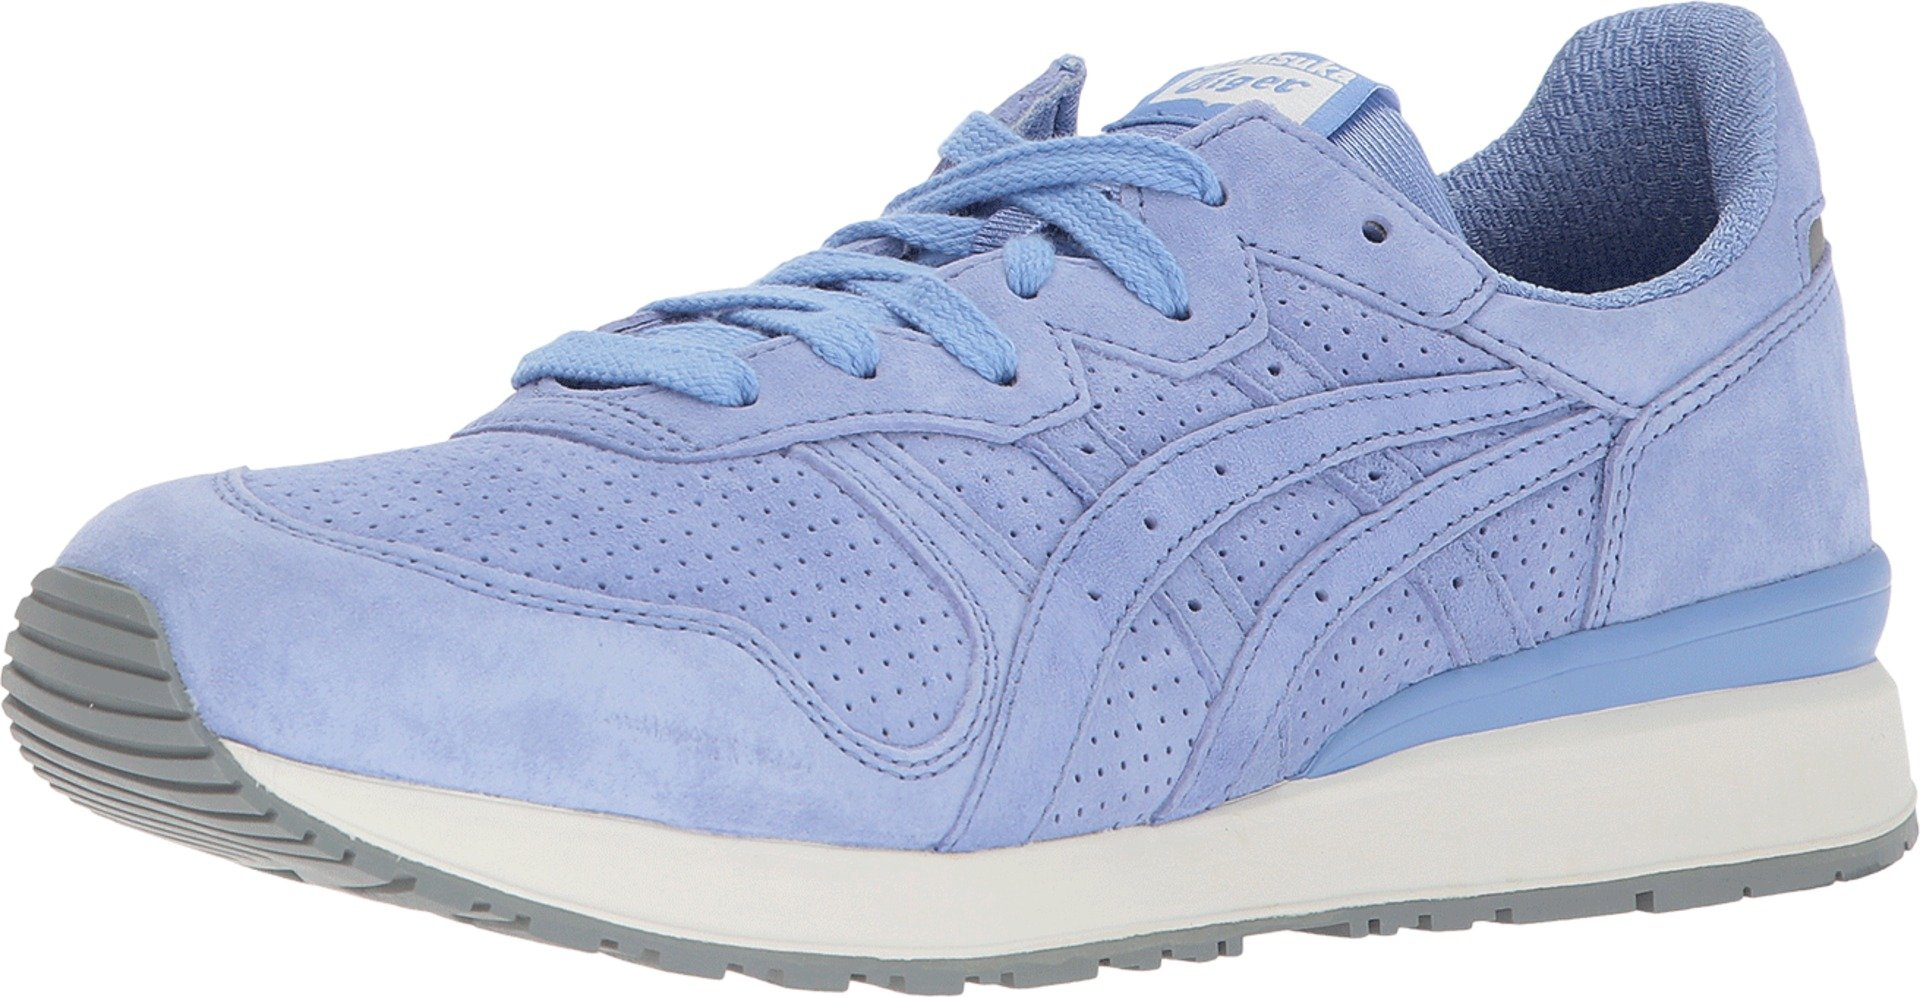 60f2adc44c Galleon - Onitsuka Tiger By Asics Unisex Tiger Ally Cornflower Blue ...